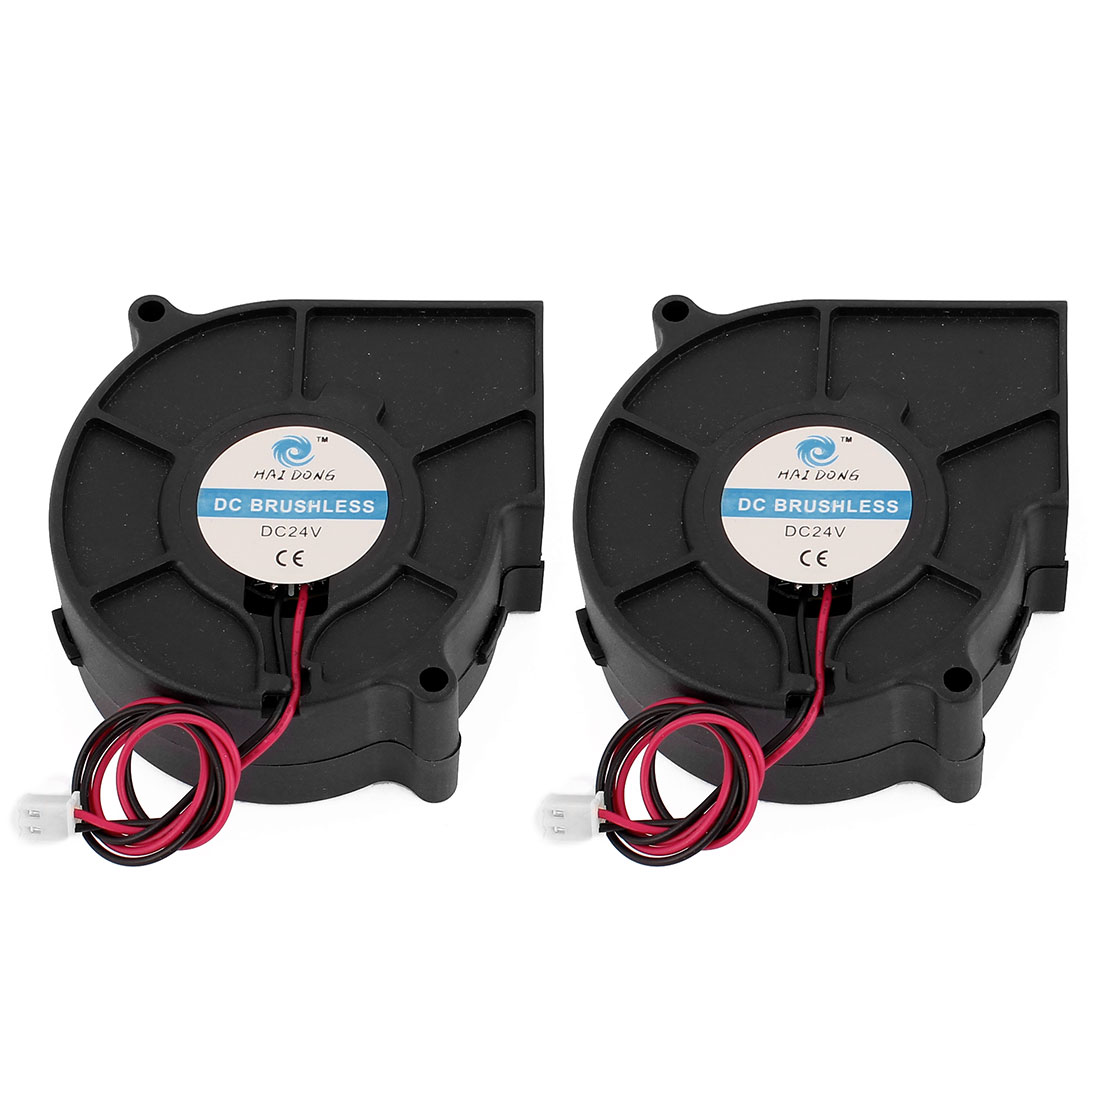 75 x 75 x 30mm 2Pin DC 24V Brushless Black Blower Cooling Fan 2 Pcs for Computer PC